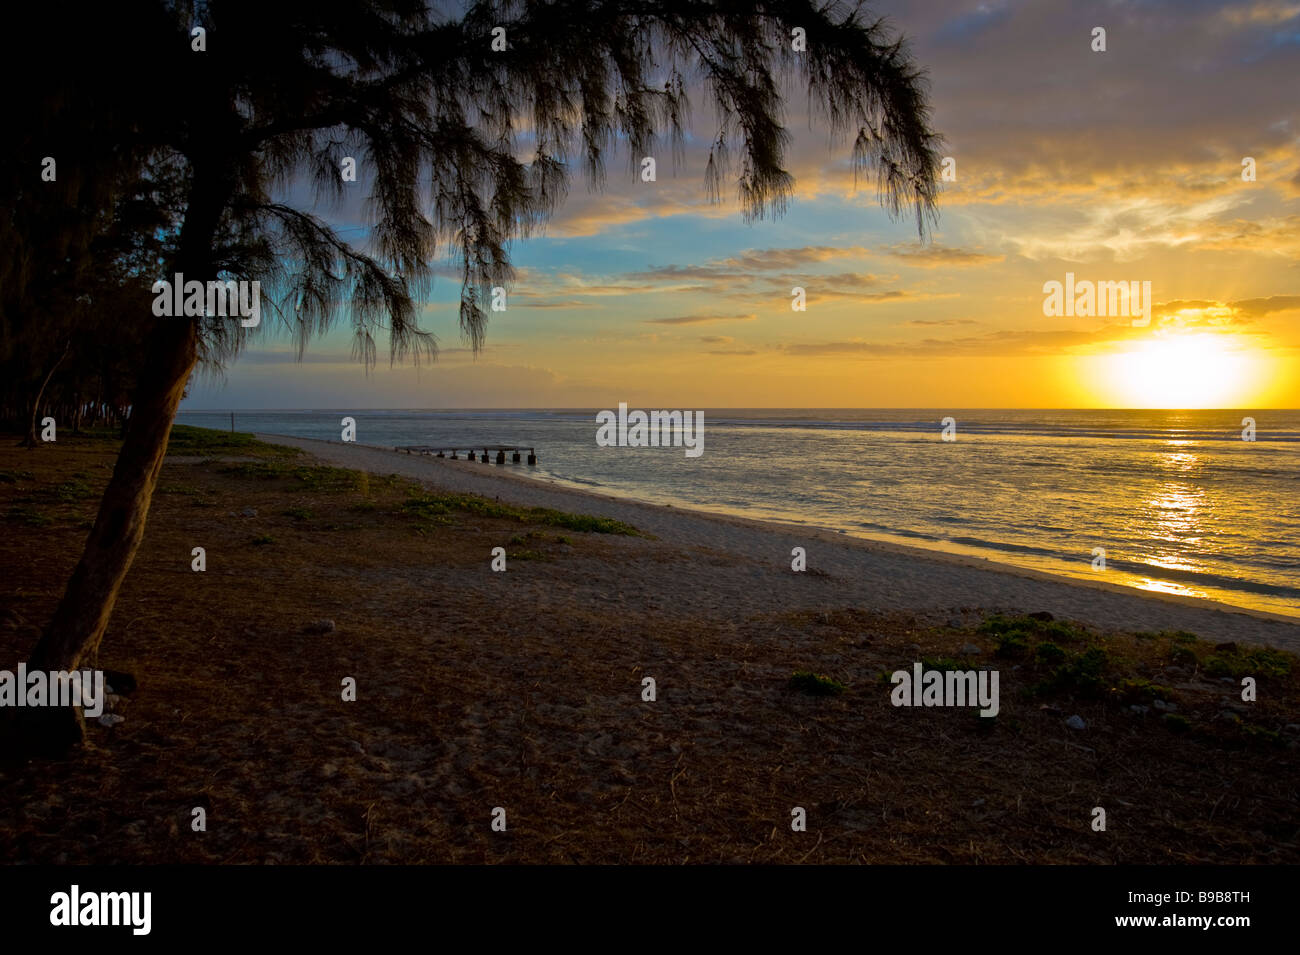 Sunset beach near Saint Gilles in La Réunion France | Sonnenuntergang am Strand von Saint Gilles in La Réunion - Stock Image